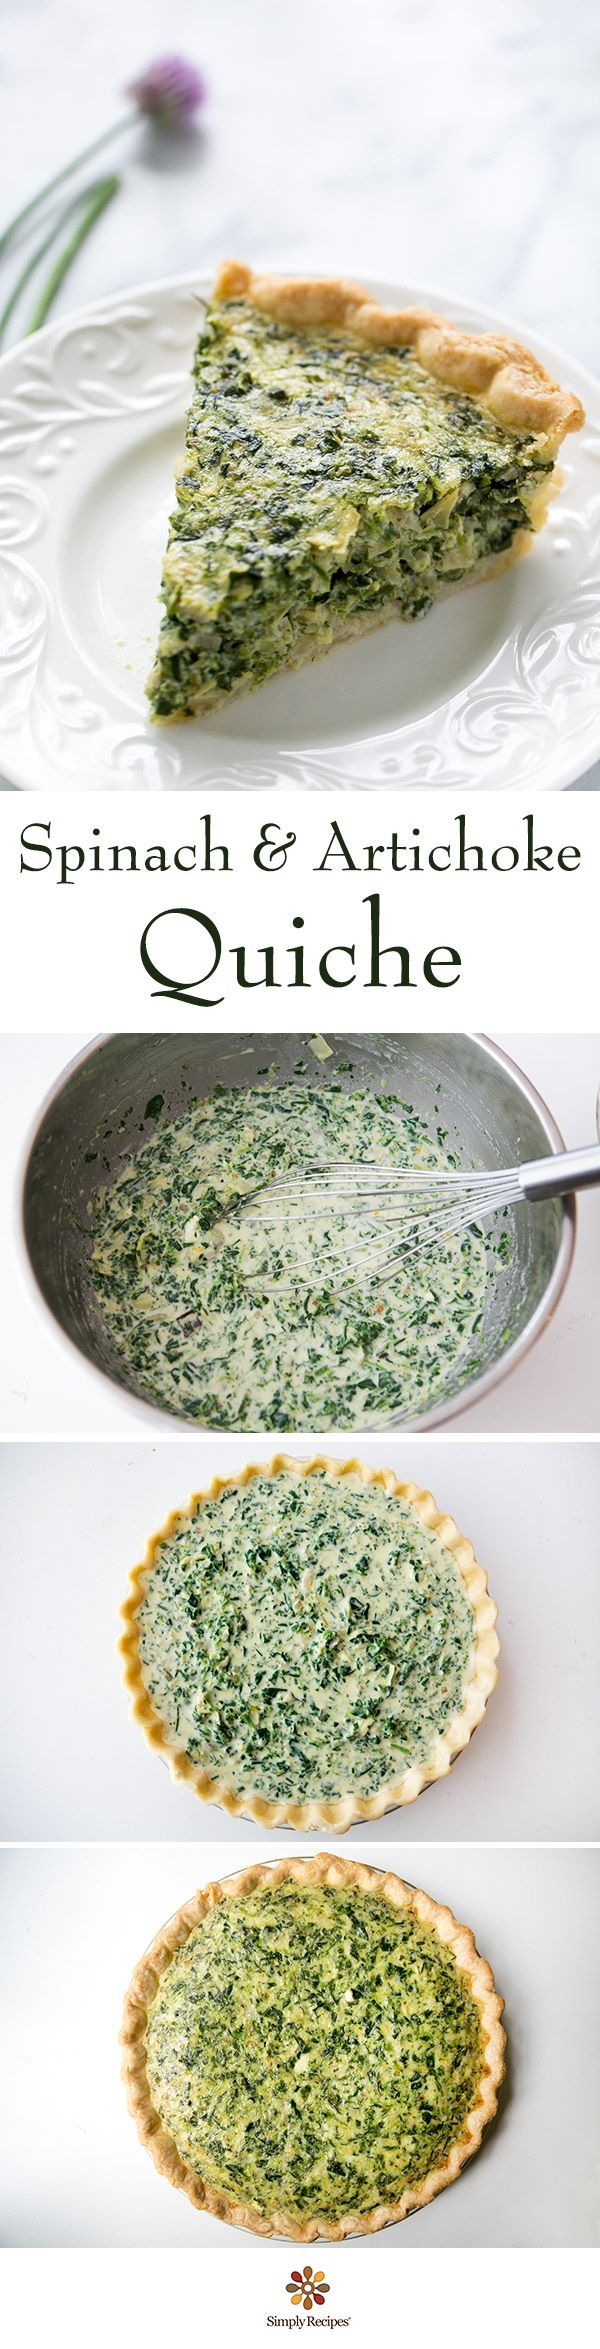 Spinach and artichoke quiche! With chopped spinach and artichokes hearts, shallots, goat cheese, green onions, eggs, and cream.